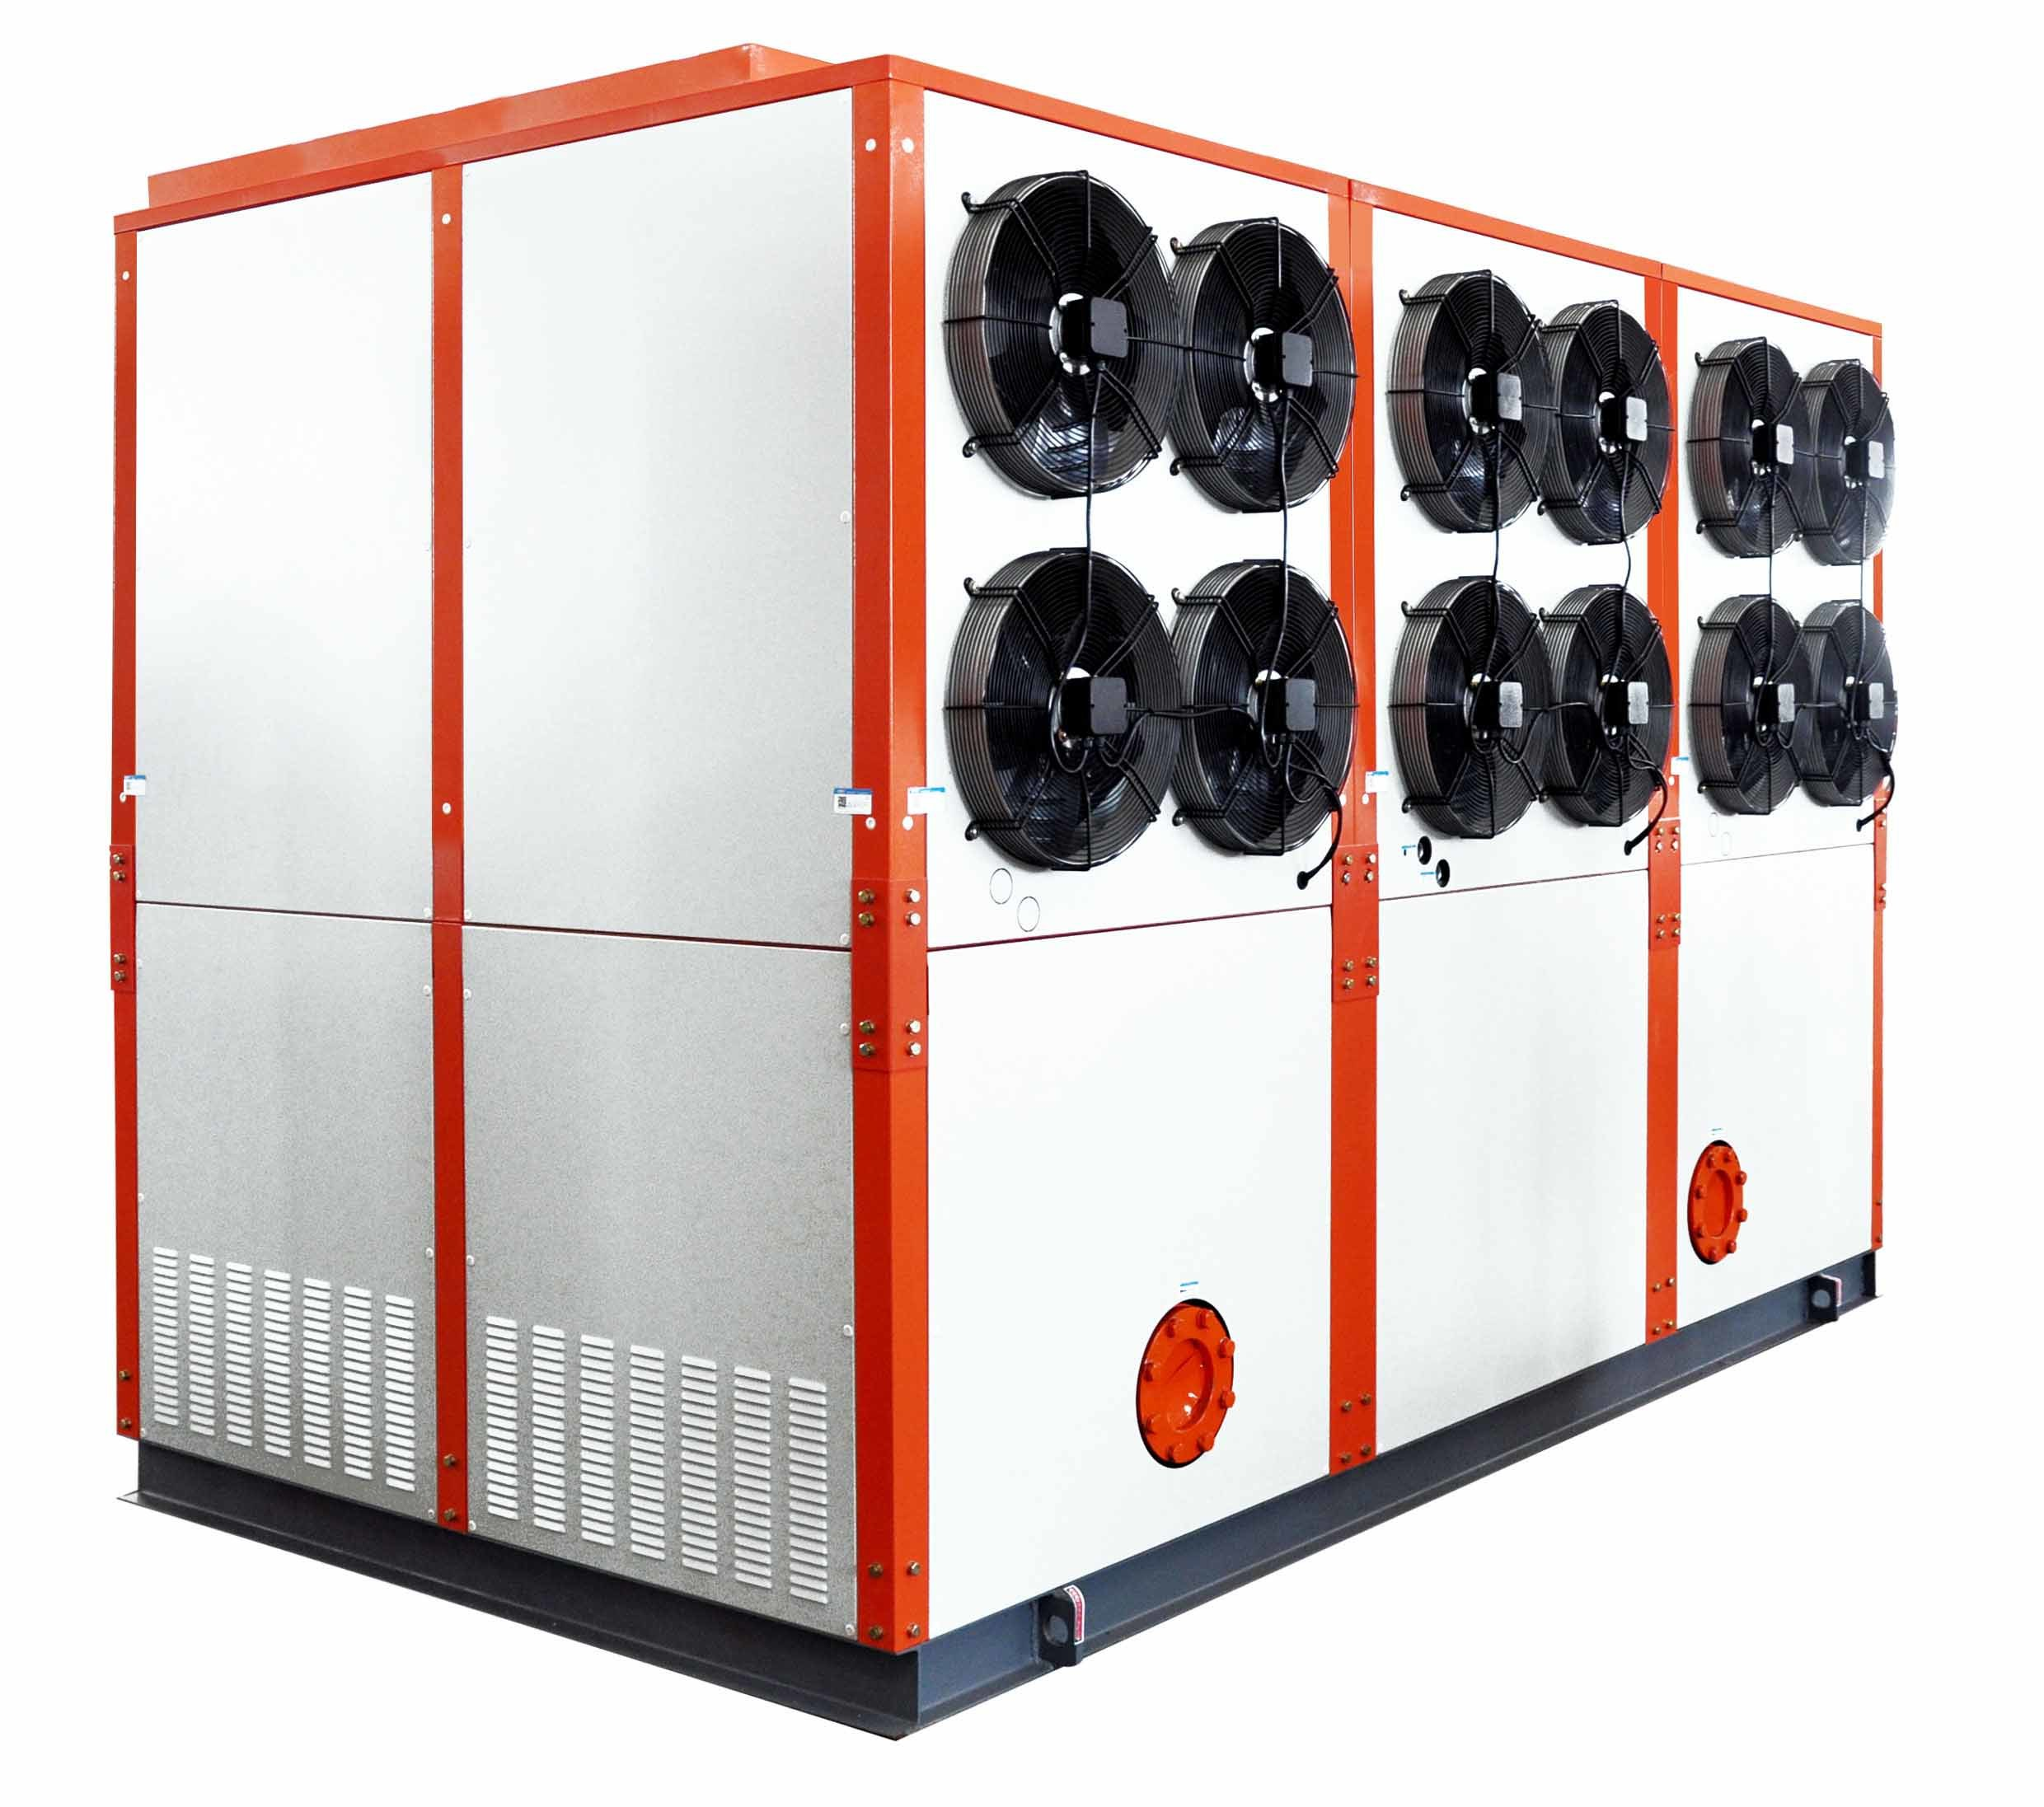 480kw Cooling Capacity Customized Intergrated Industrial Evaporative Cooled Water Chiller